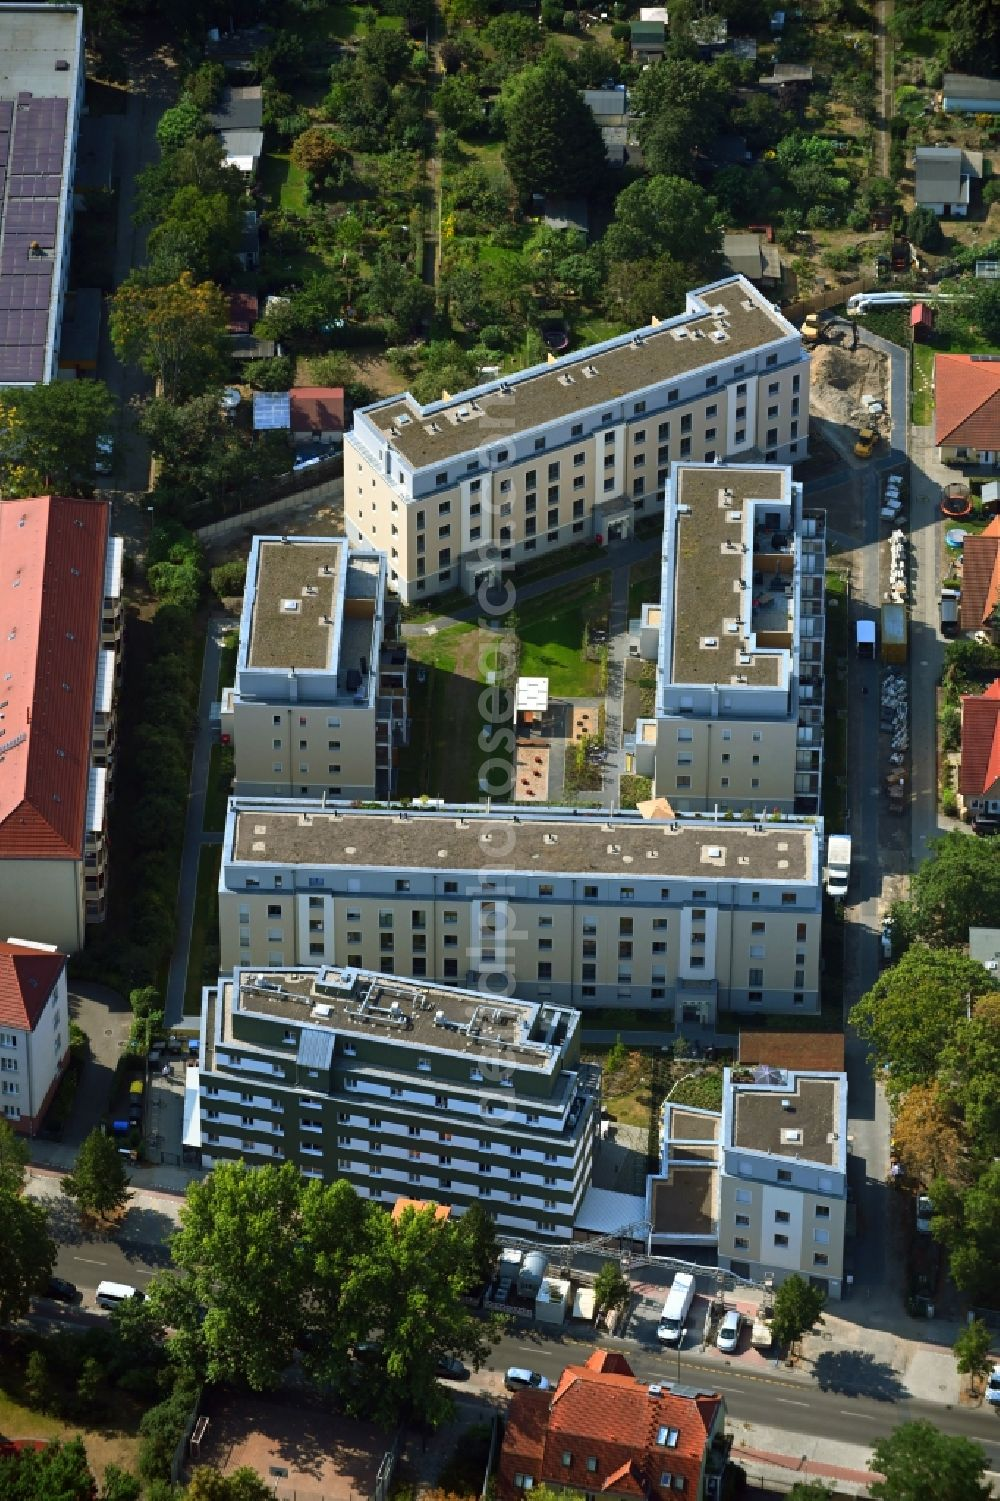 Aerial image Berlin - New multi-family residential complex along the Einbecker Strasse in the district Lichtenberg in Berlin, Germany